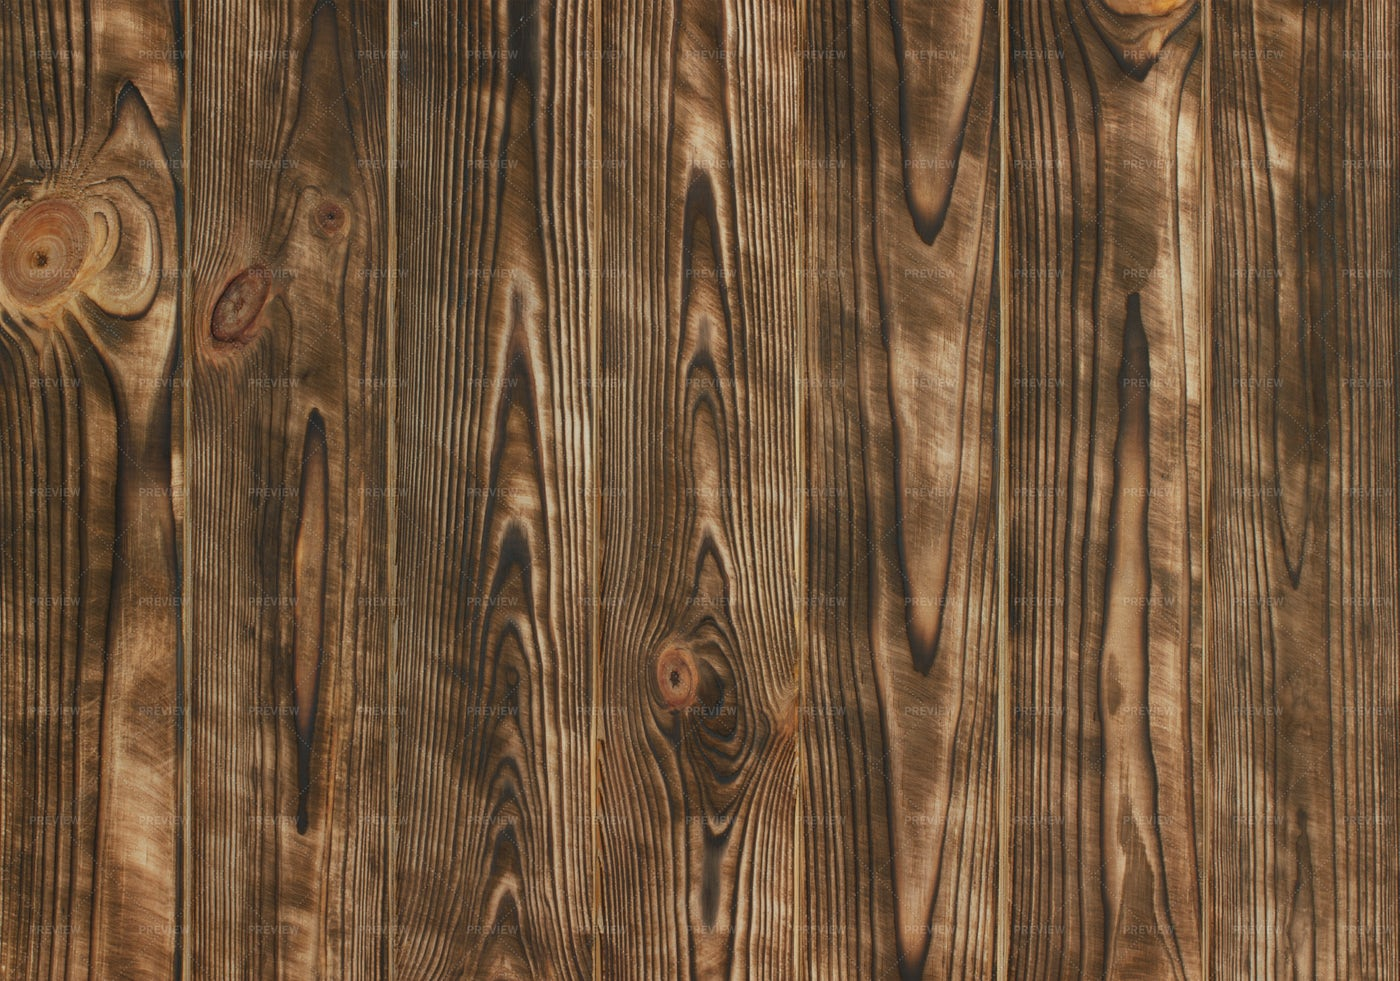 Natural Wooden Planks Background: Stock Photos